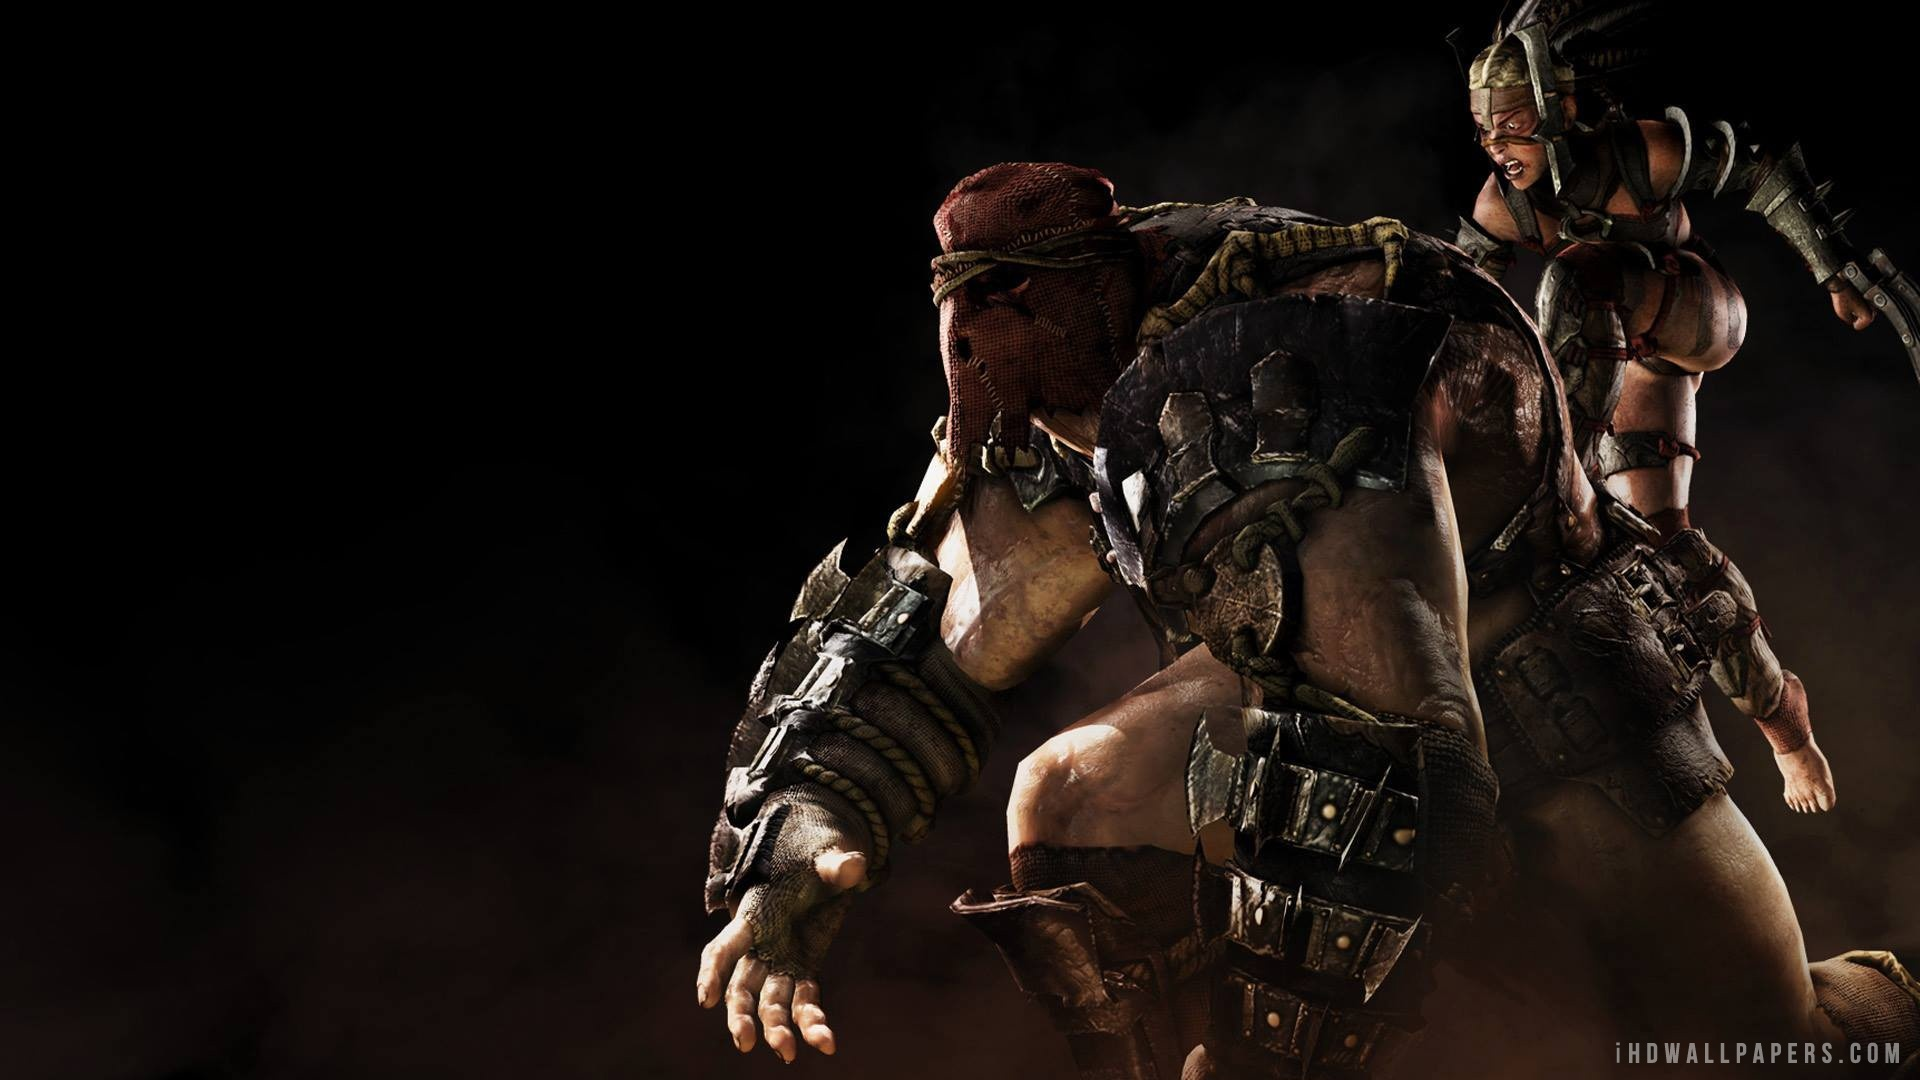 Ferra Torr in Mortal Kombat X HD Wallpaper   iHD Wallpapers 1920x1080